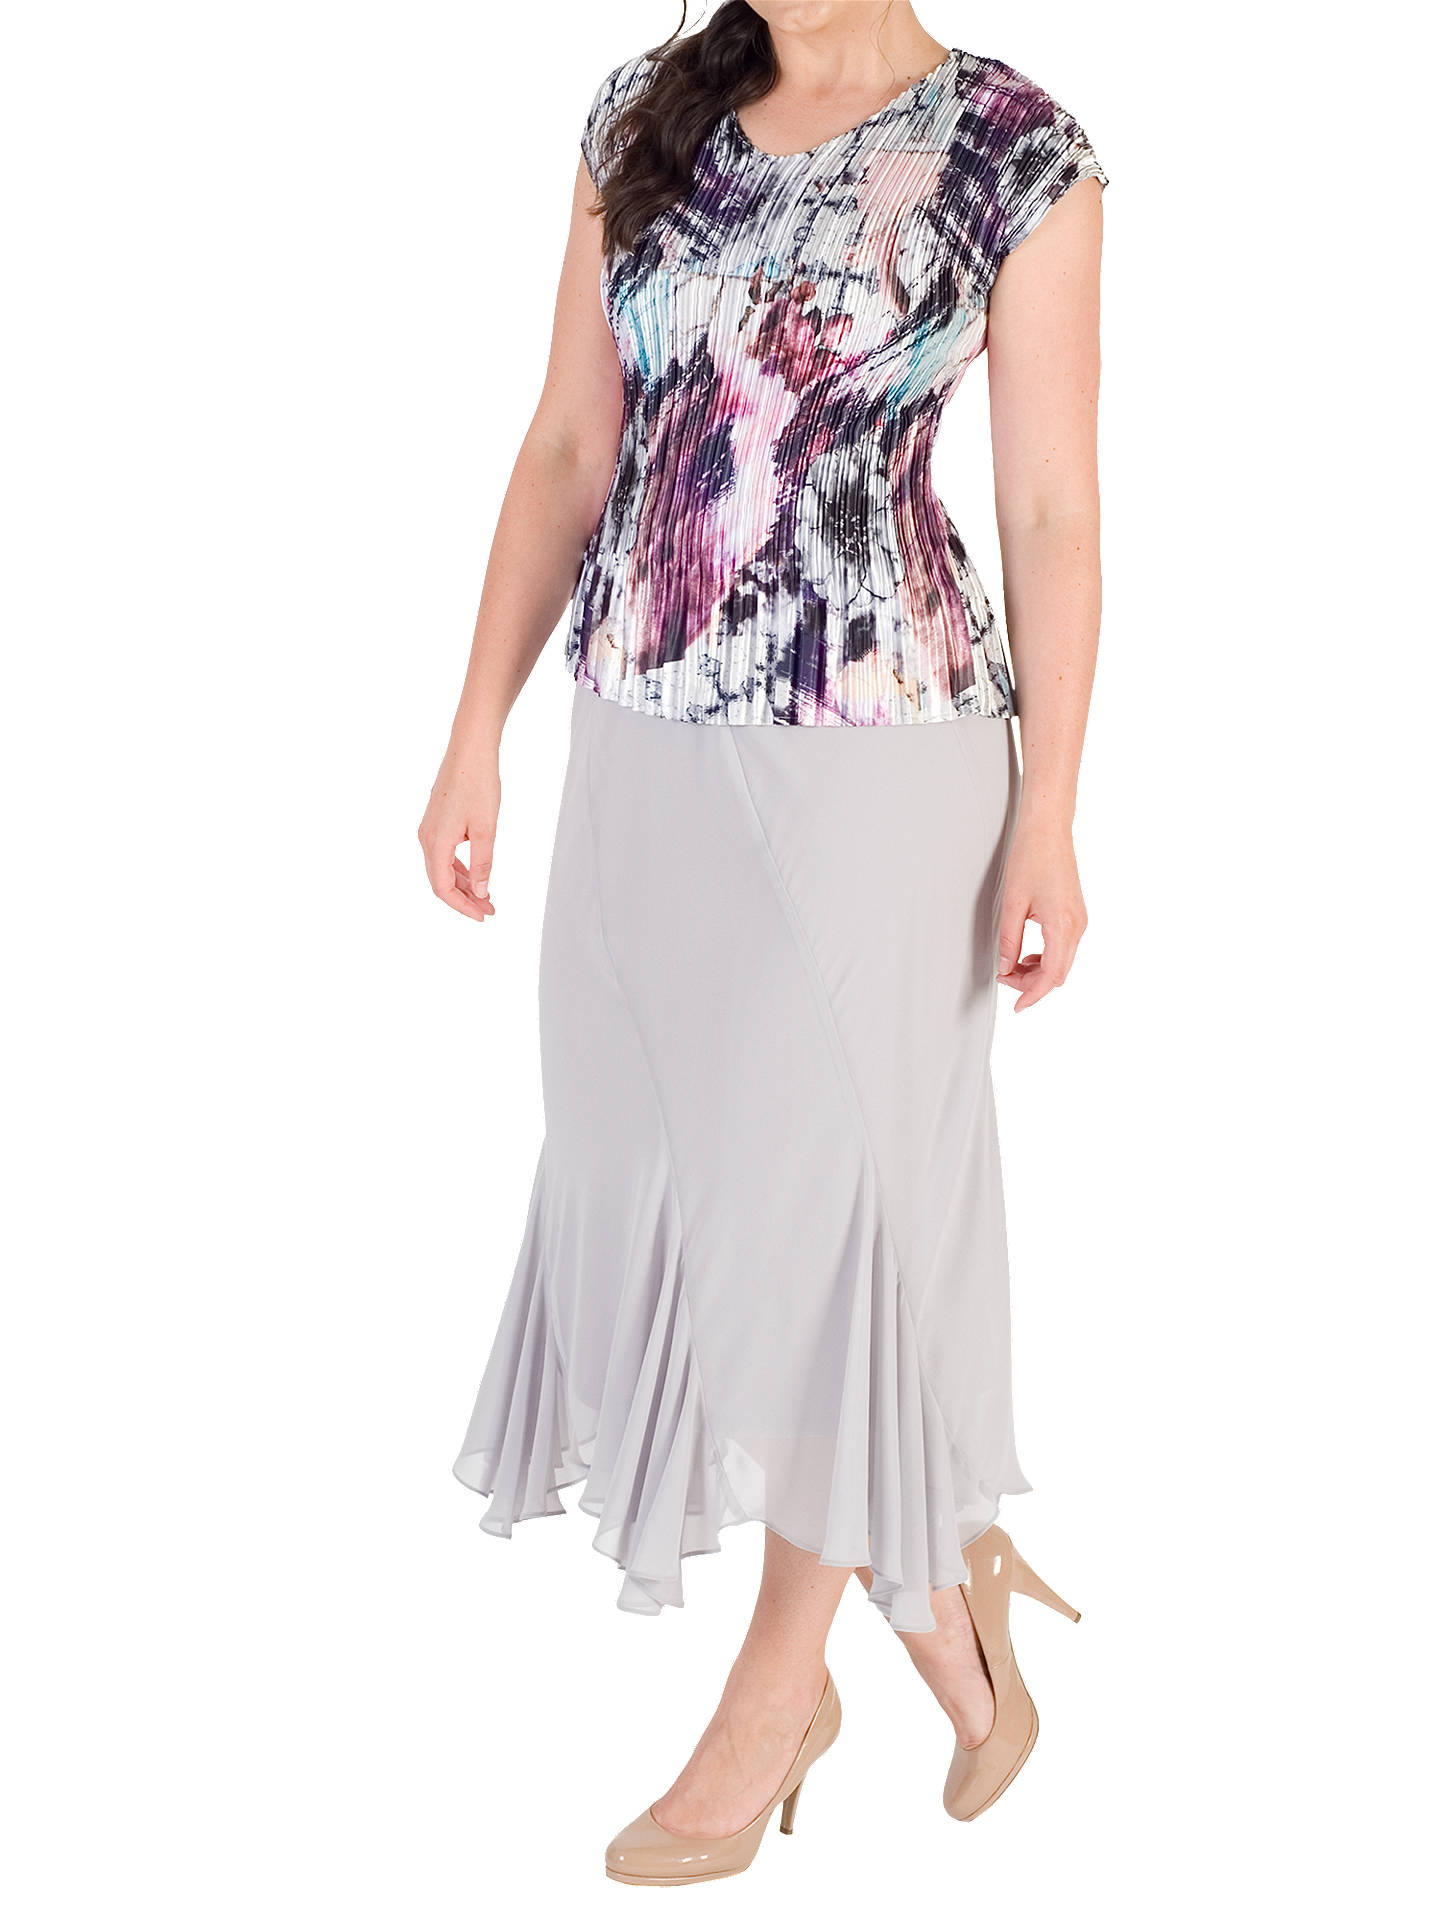 BuyChesca Pleated Top, Pink/Aqua, 12-14 Online at johnlewis.com